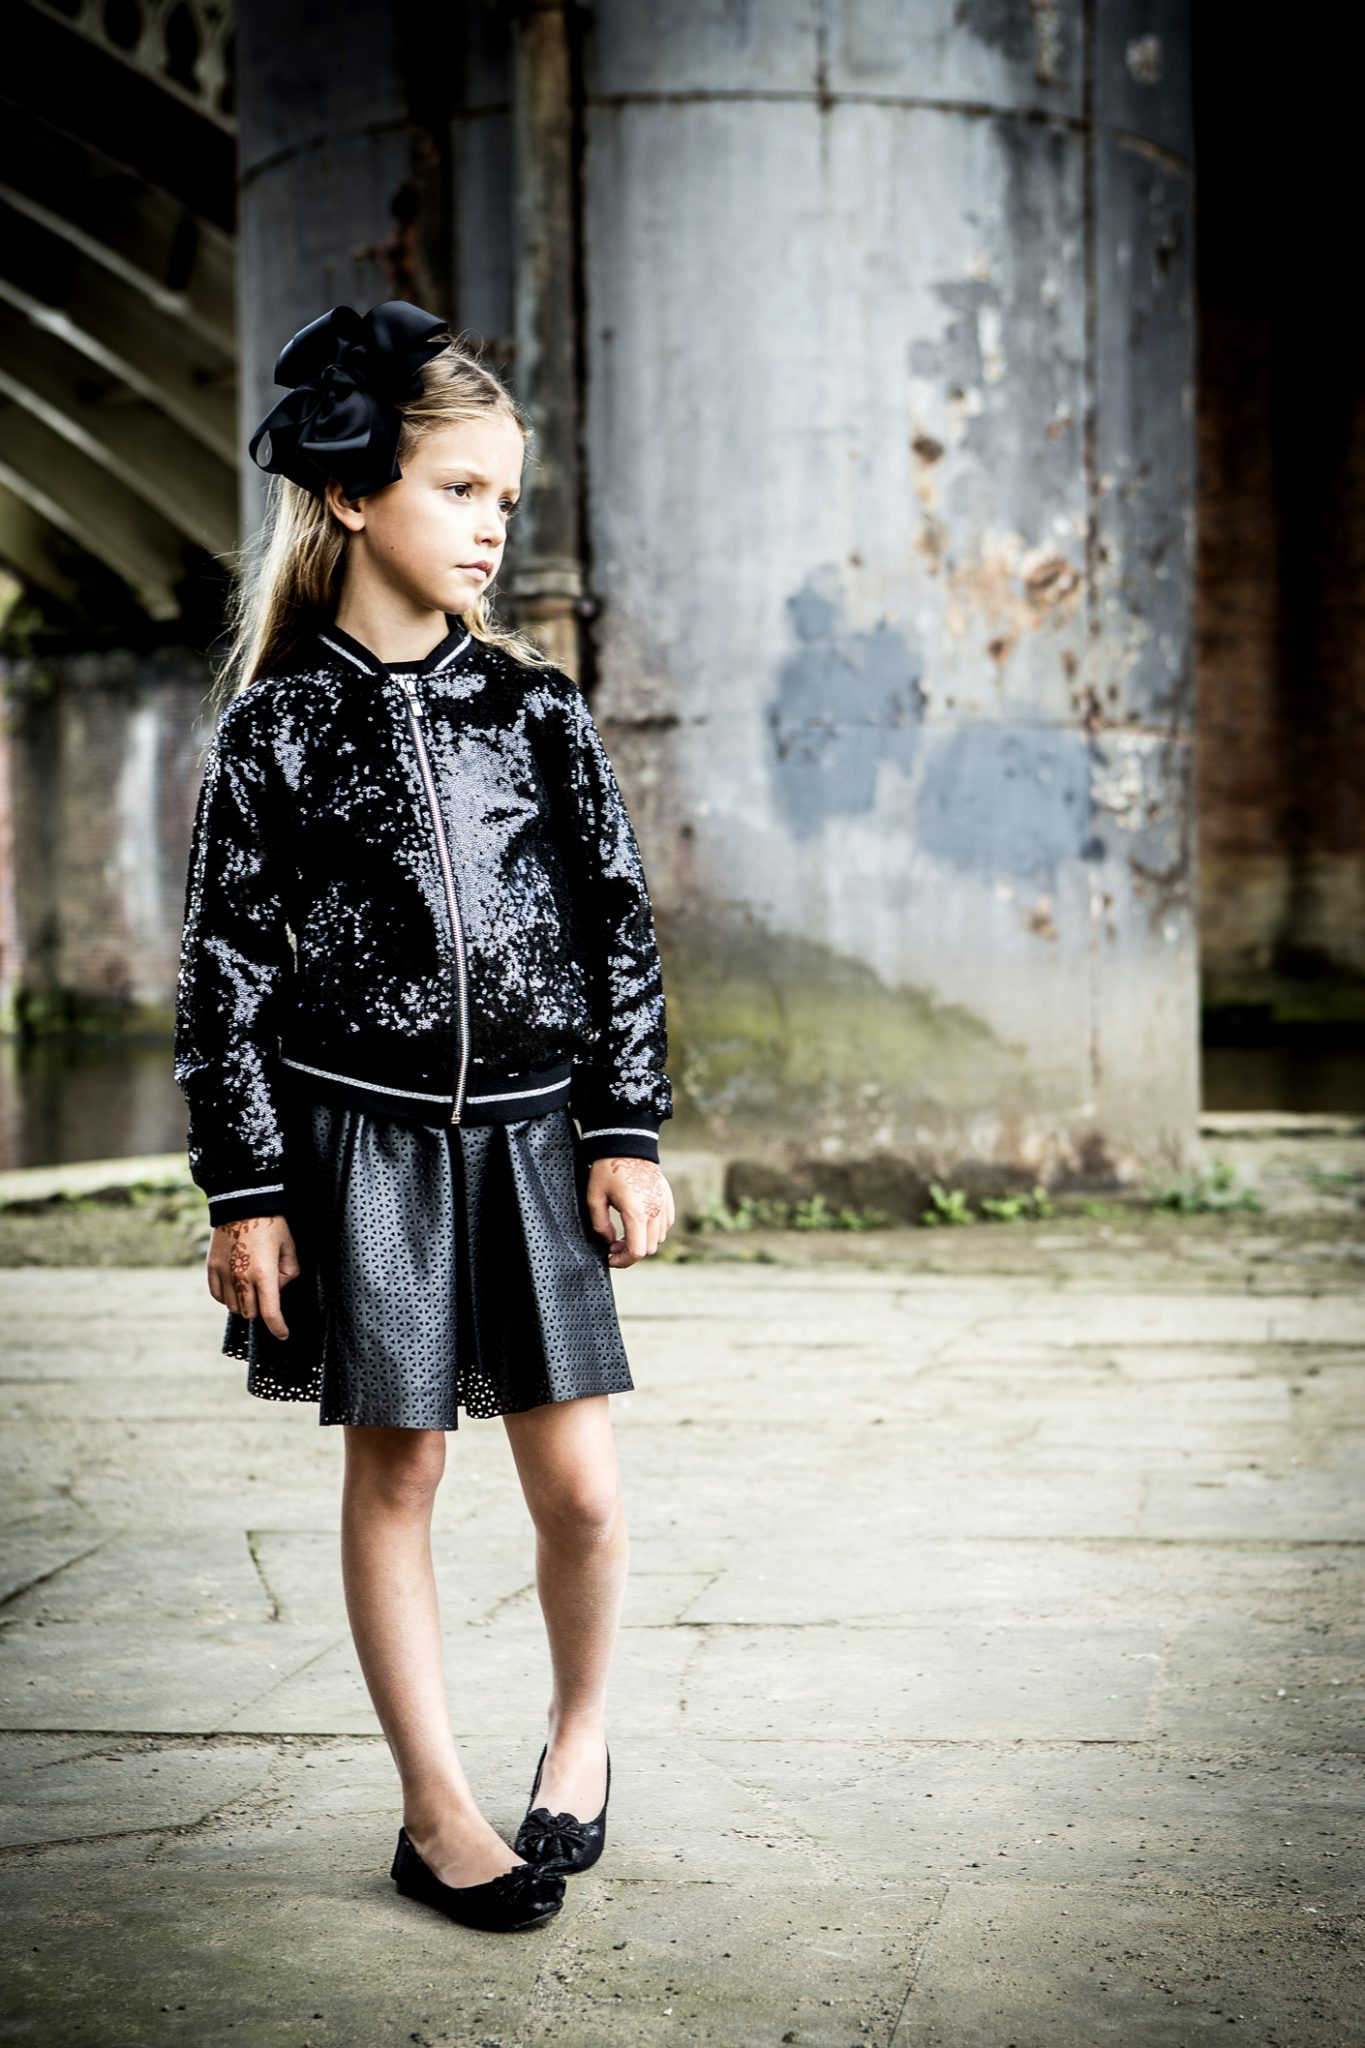 kidswear-fashion-photographer-in-manchester